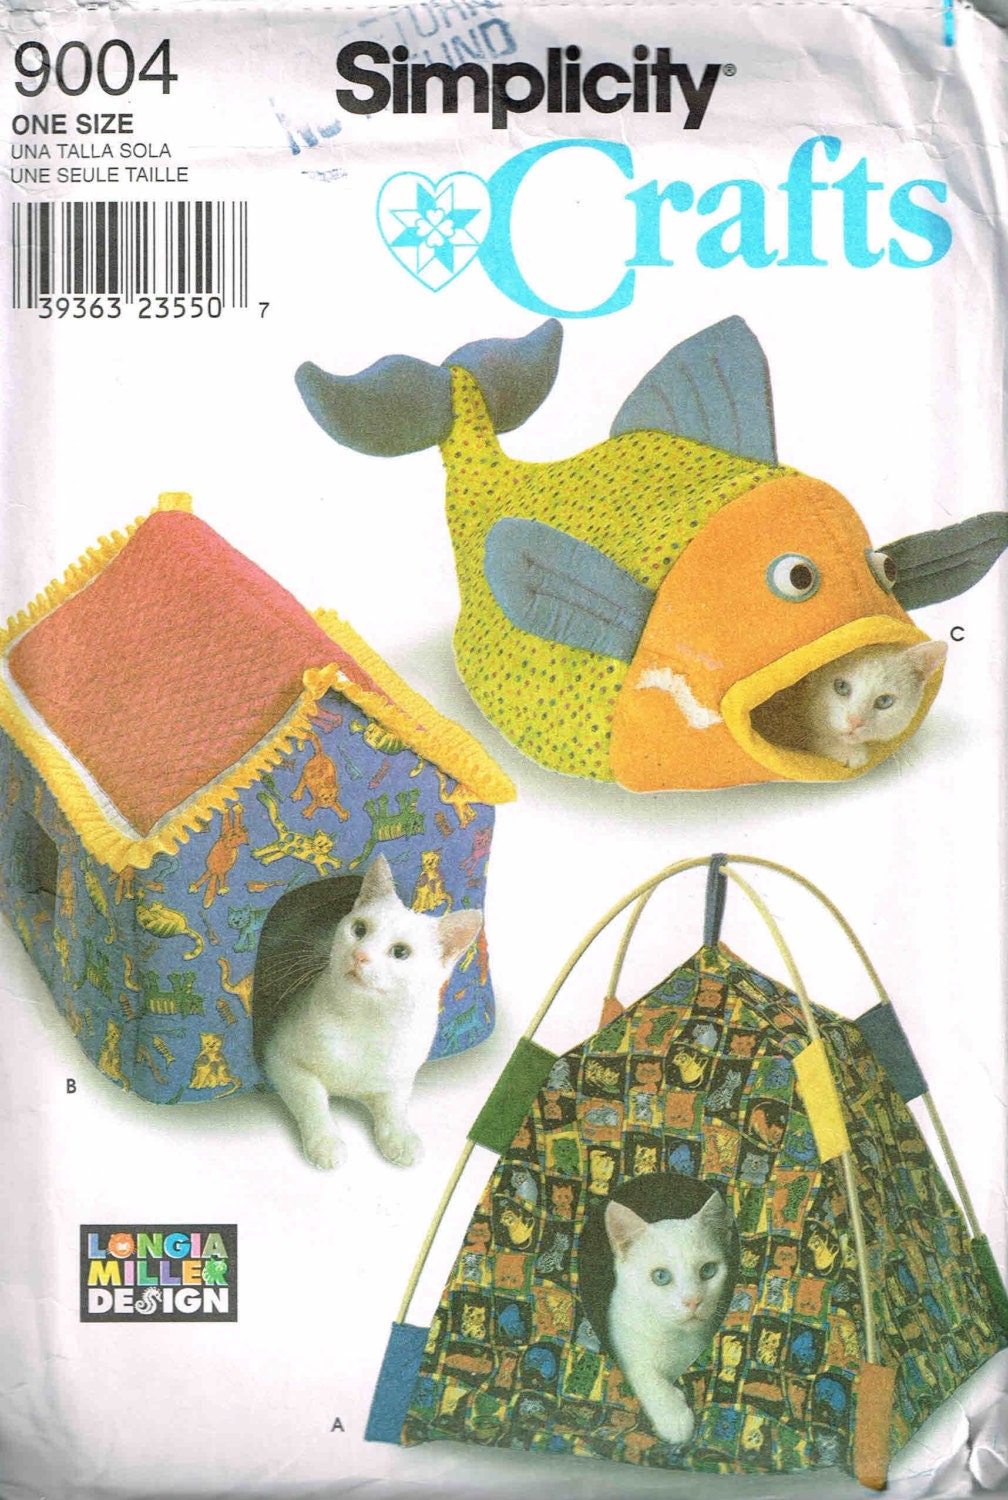 Pet Beds Diy Tent Fish And House For Cats And Dogs Sewing